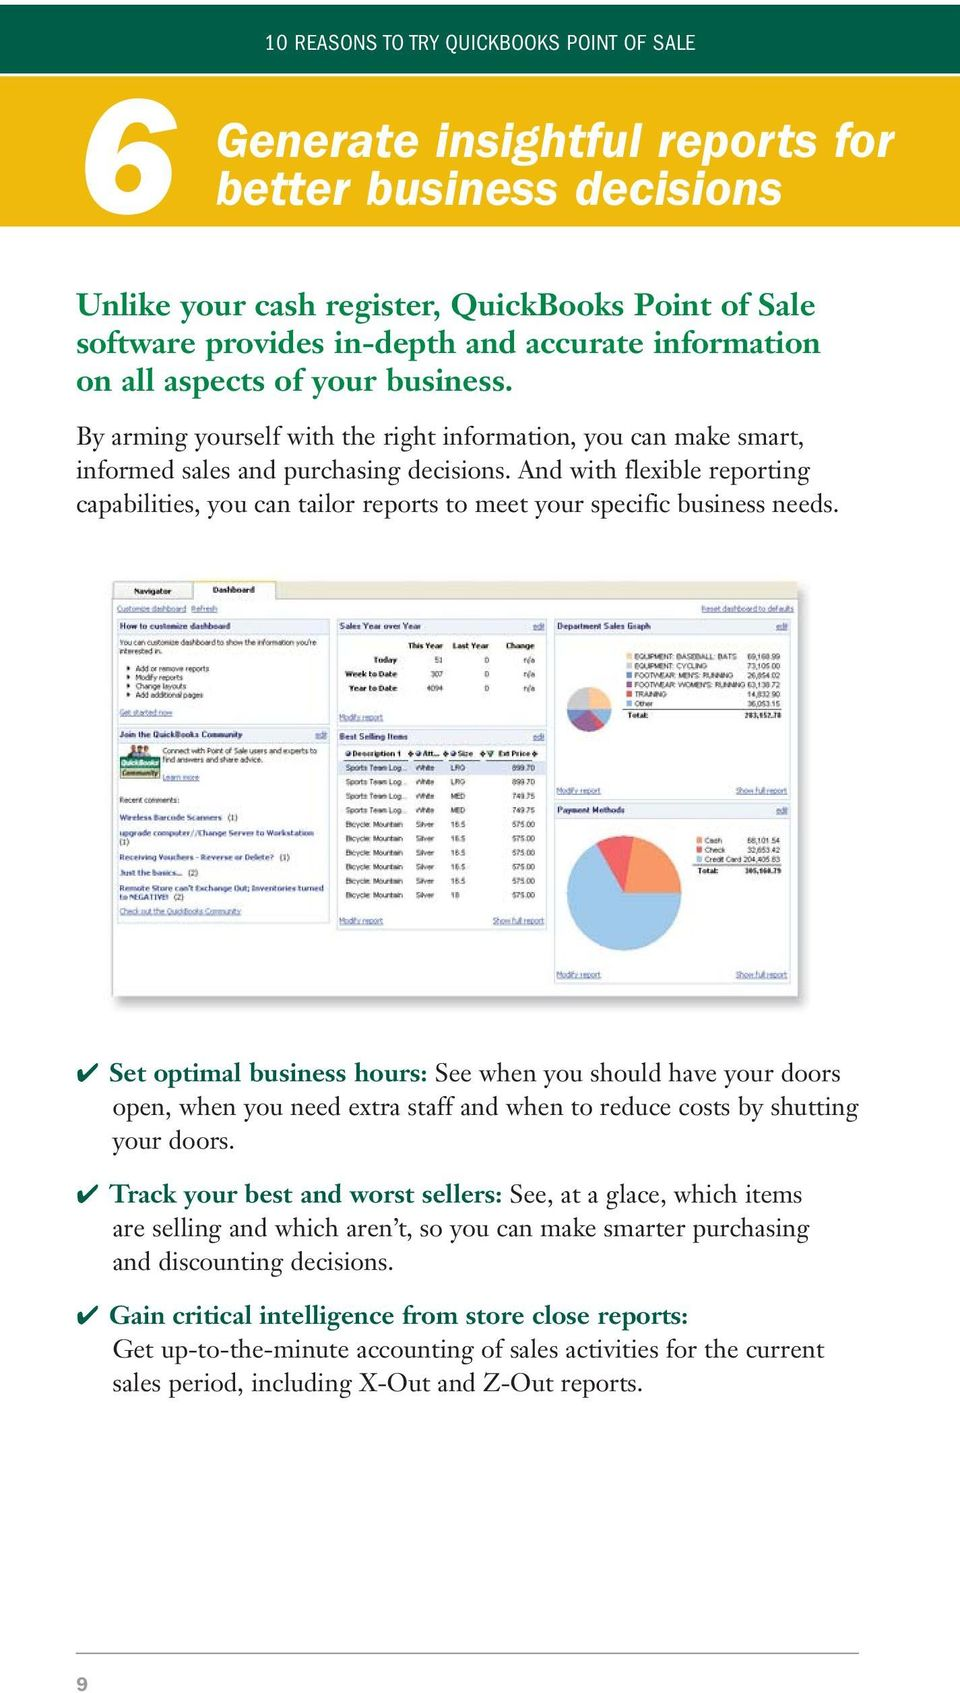 And with flexible reporting capabilities, you can tailor reports to meet your specific business needs.